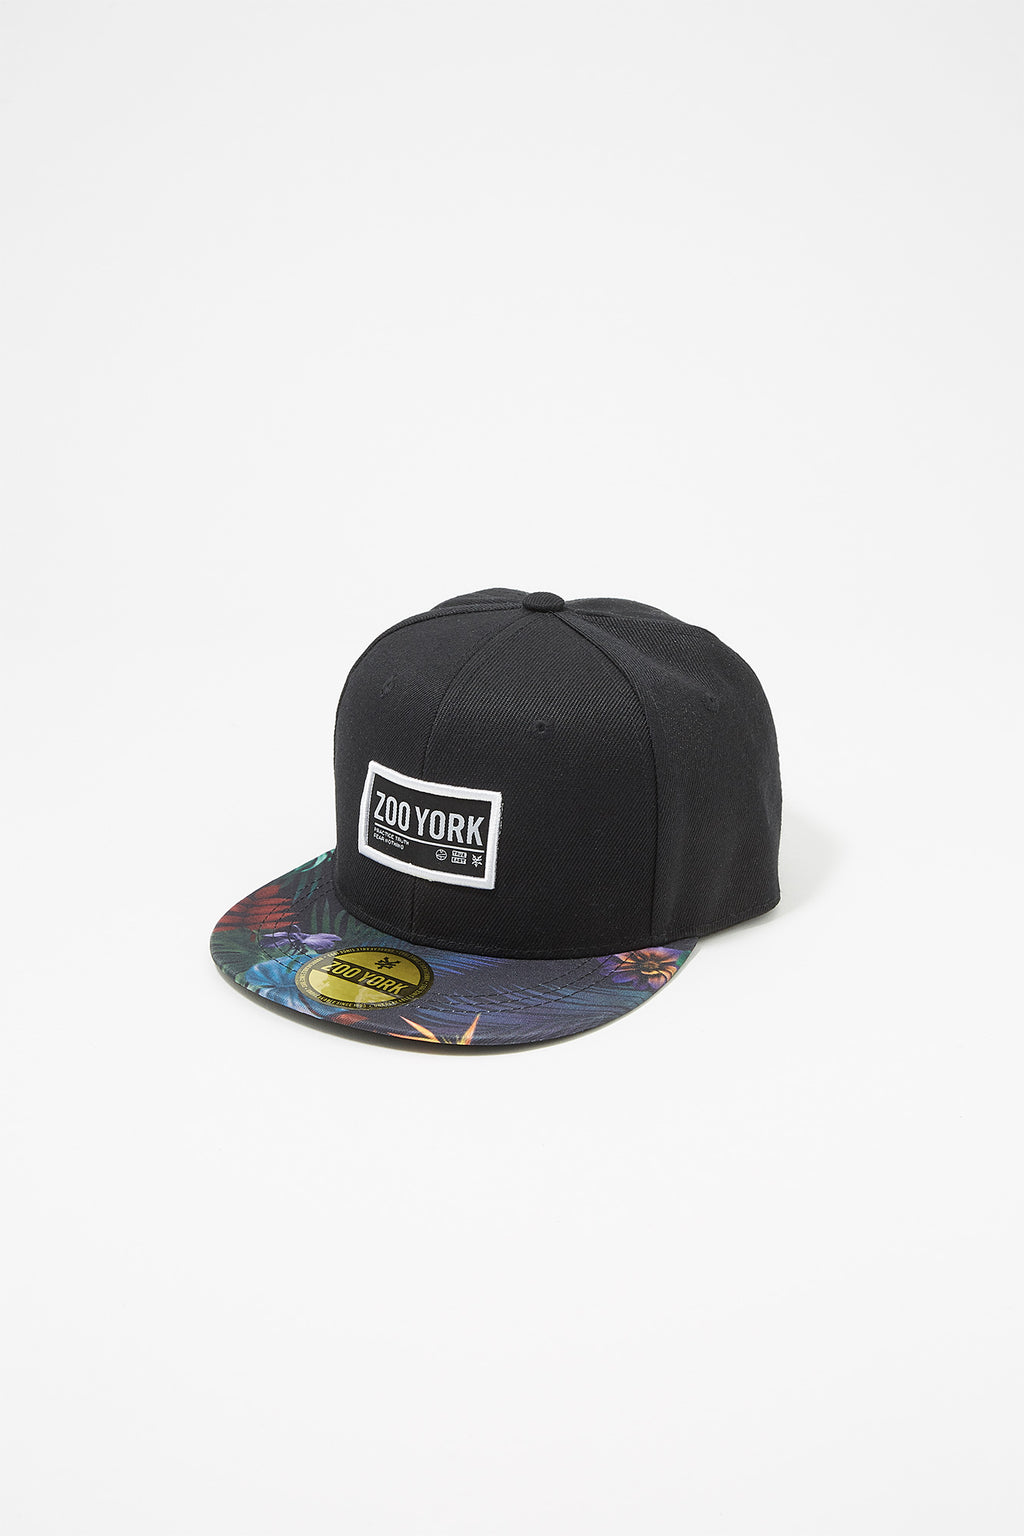 Zoo York Boys Floral Flat Brim Hat